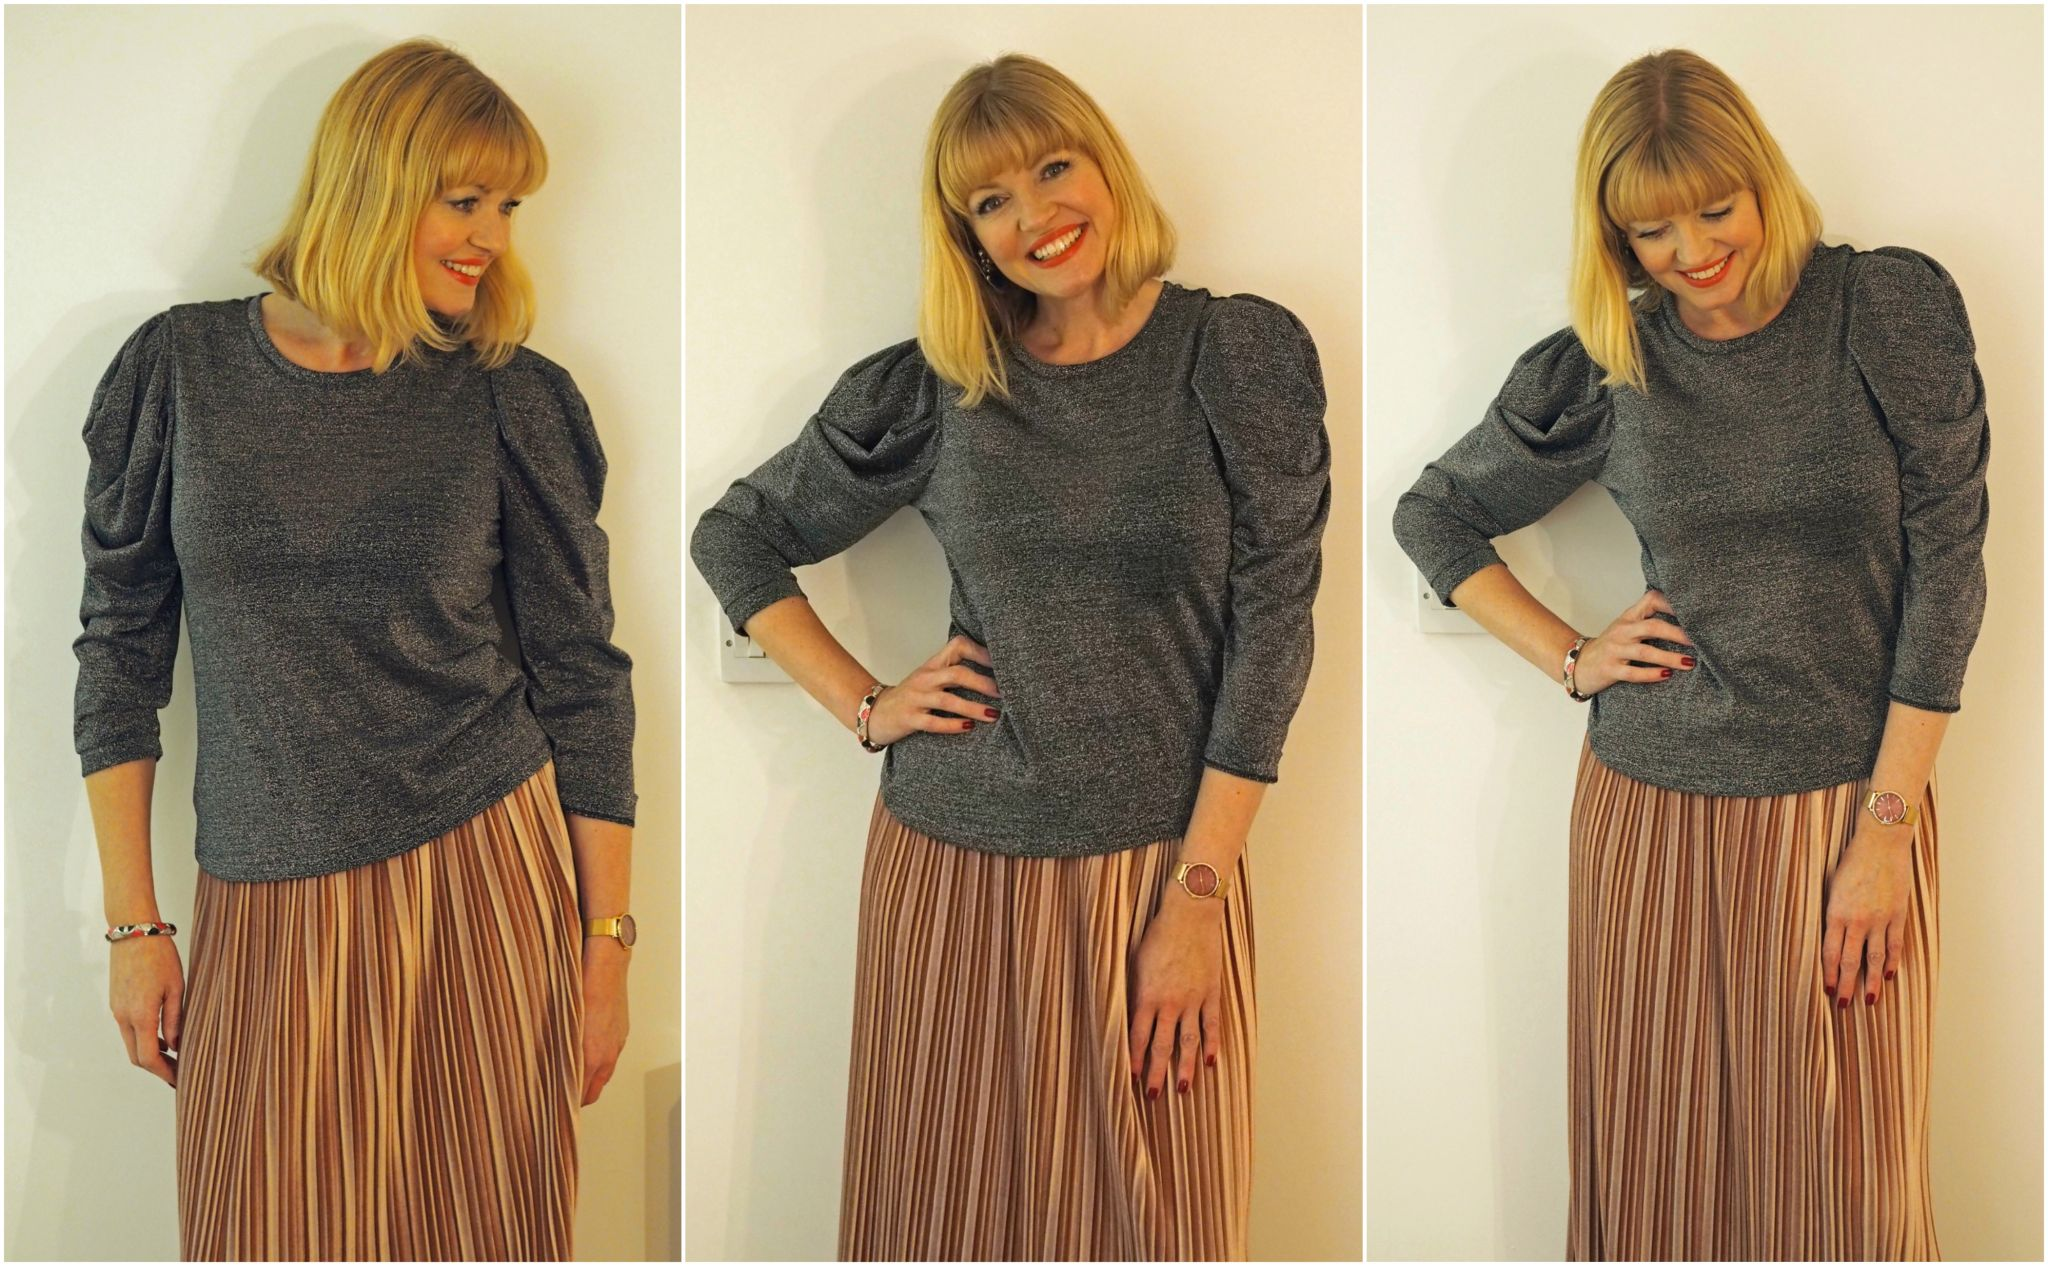 Pink Velvet Pleated Midi Skirt With Metallic Top What Lizzy Loves